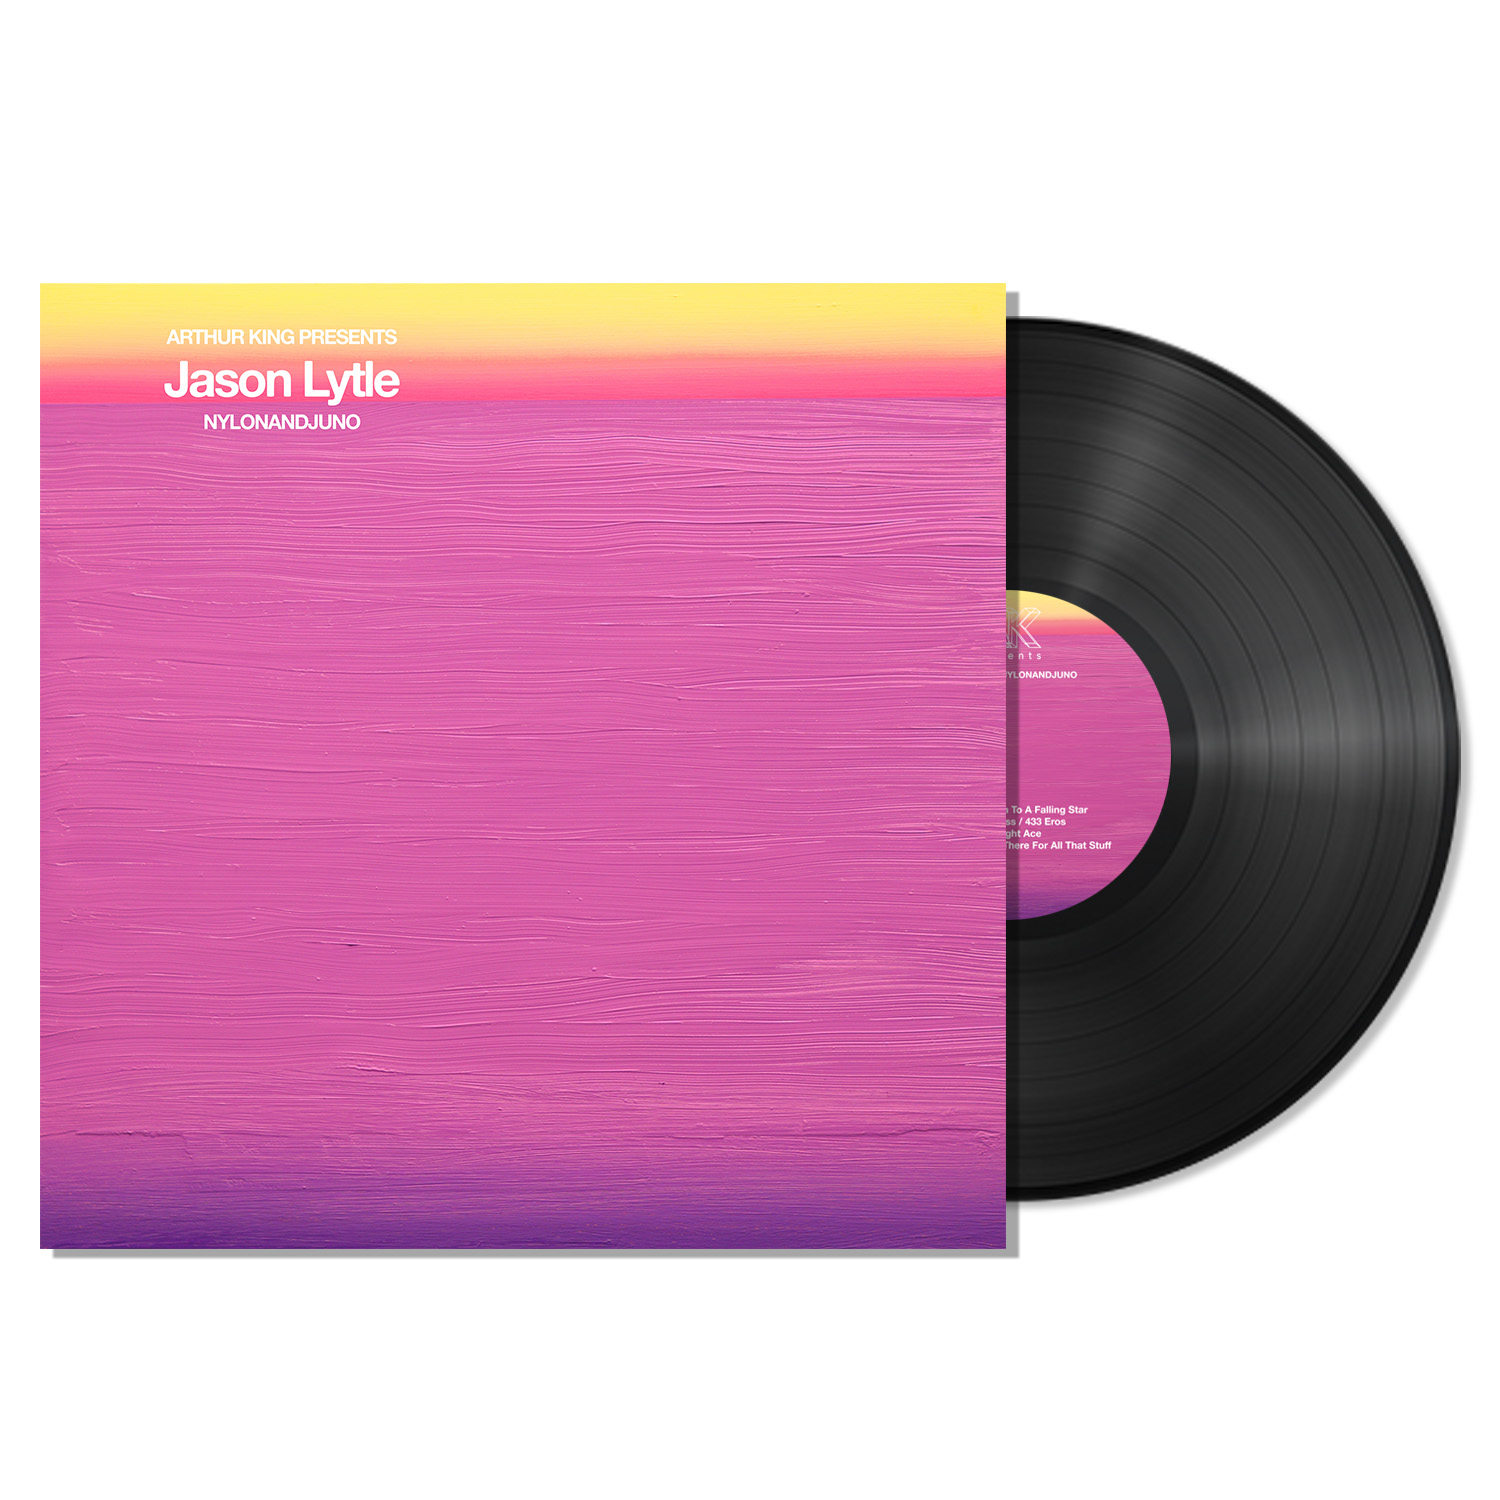 Jason Lytle - Arthur King Presents Jason Lytle: NYLONANDJUNO - Black LP